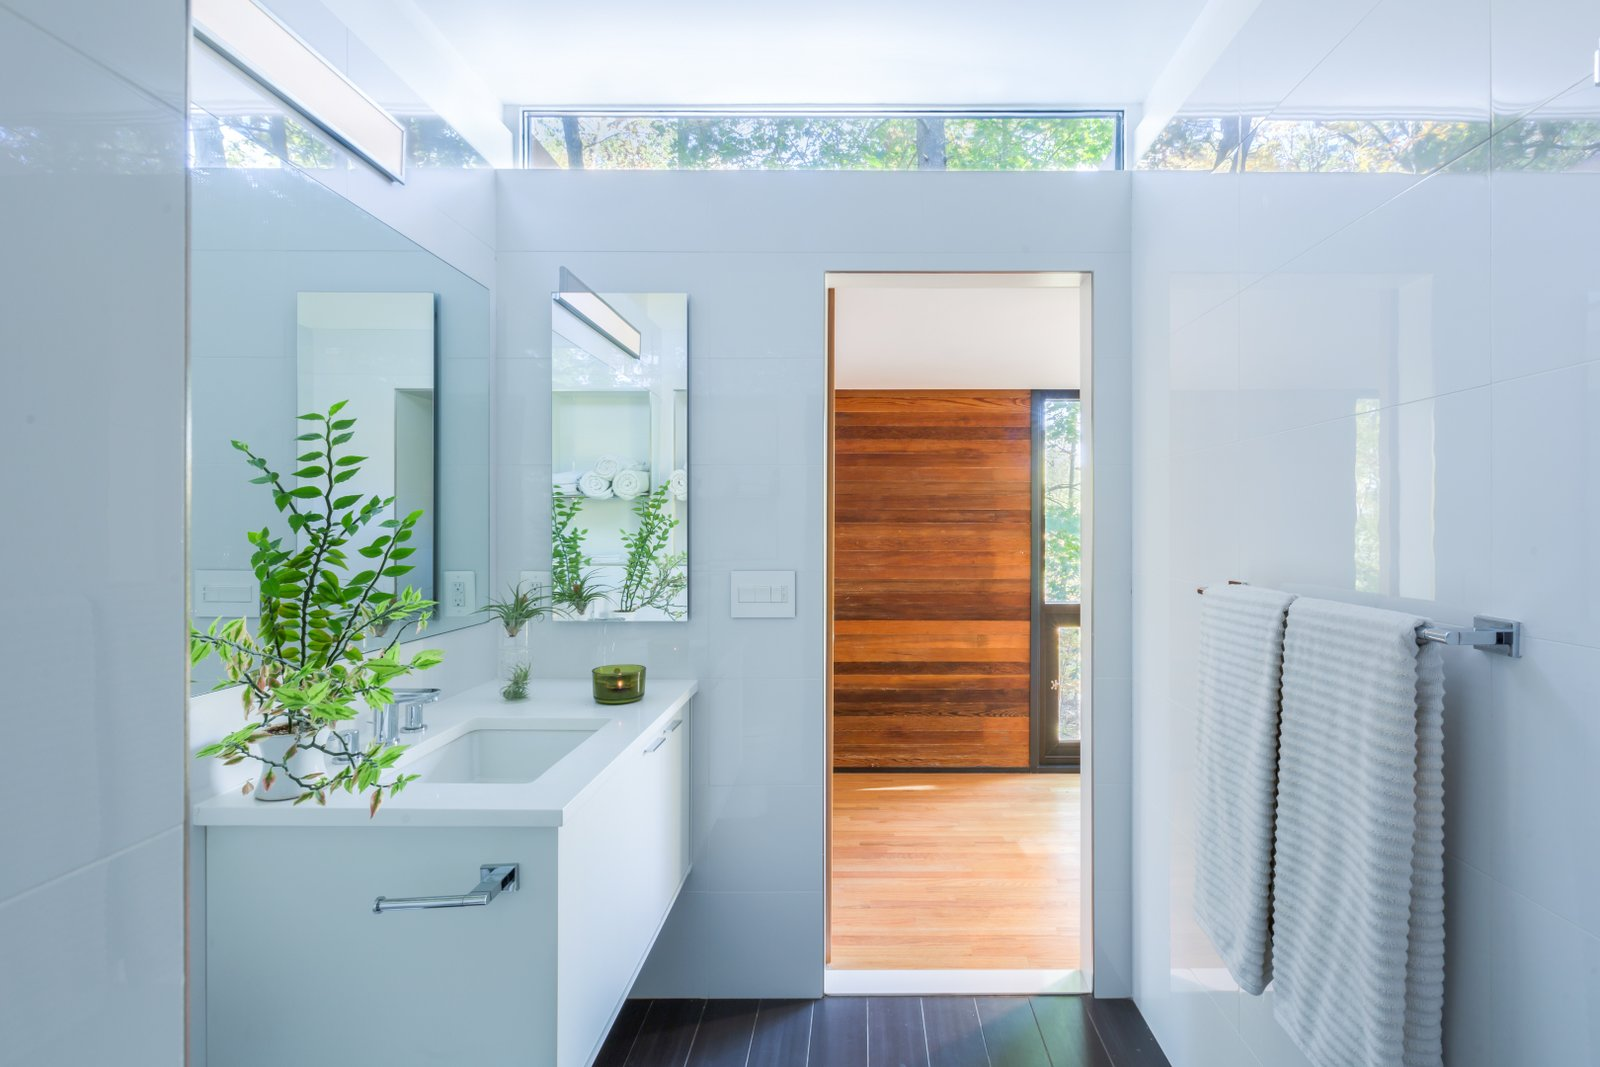 Treehaus bathroom with white tile and clerestory window